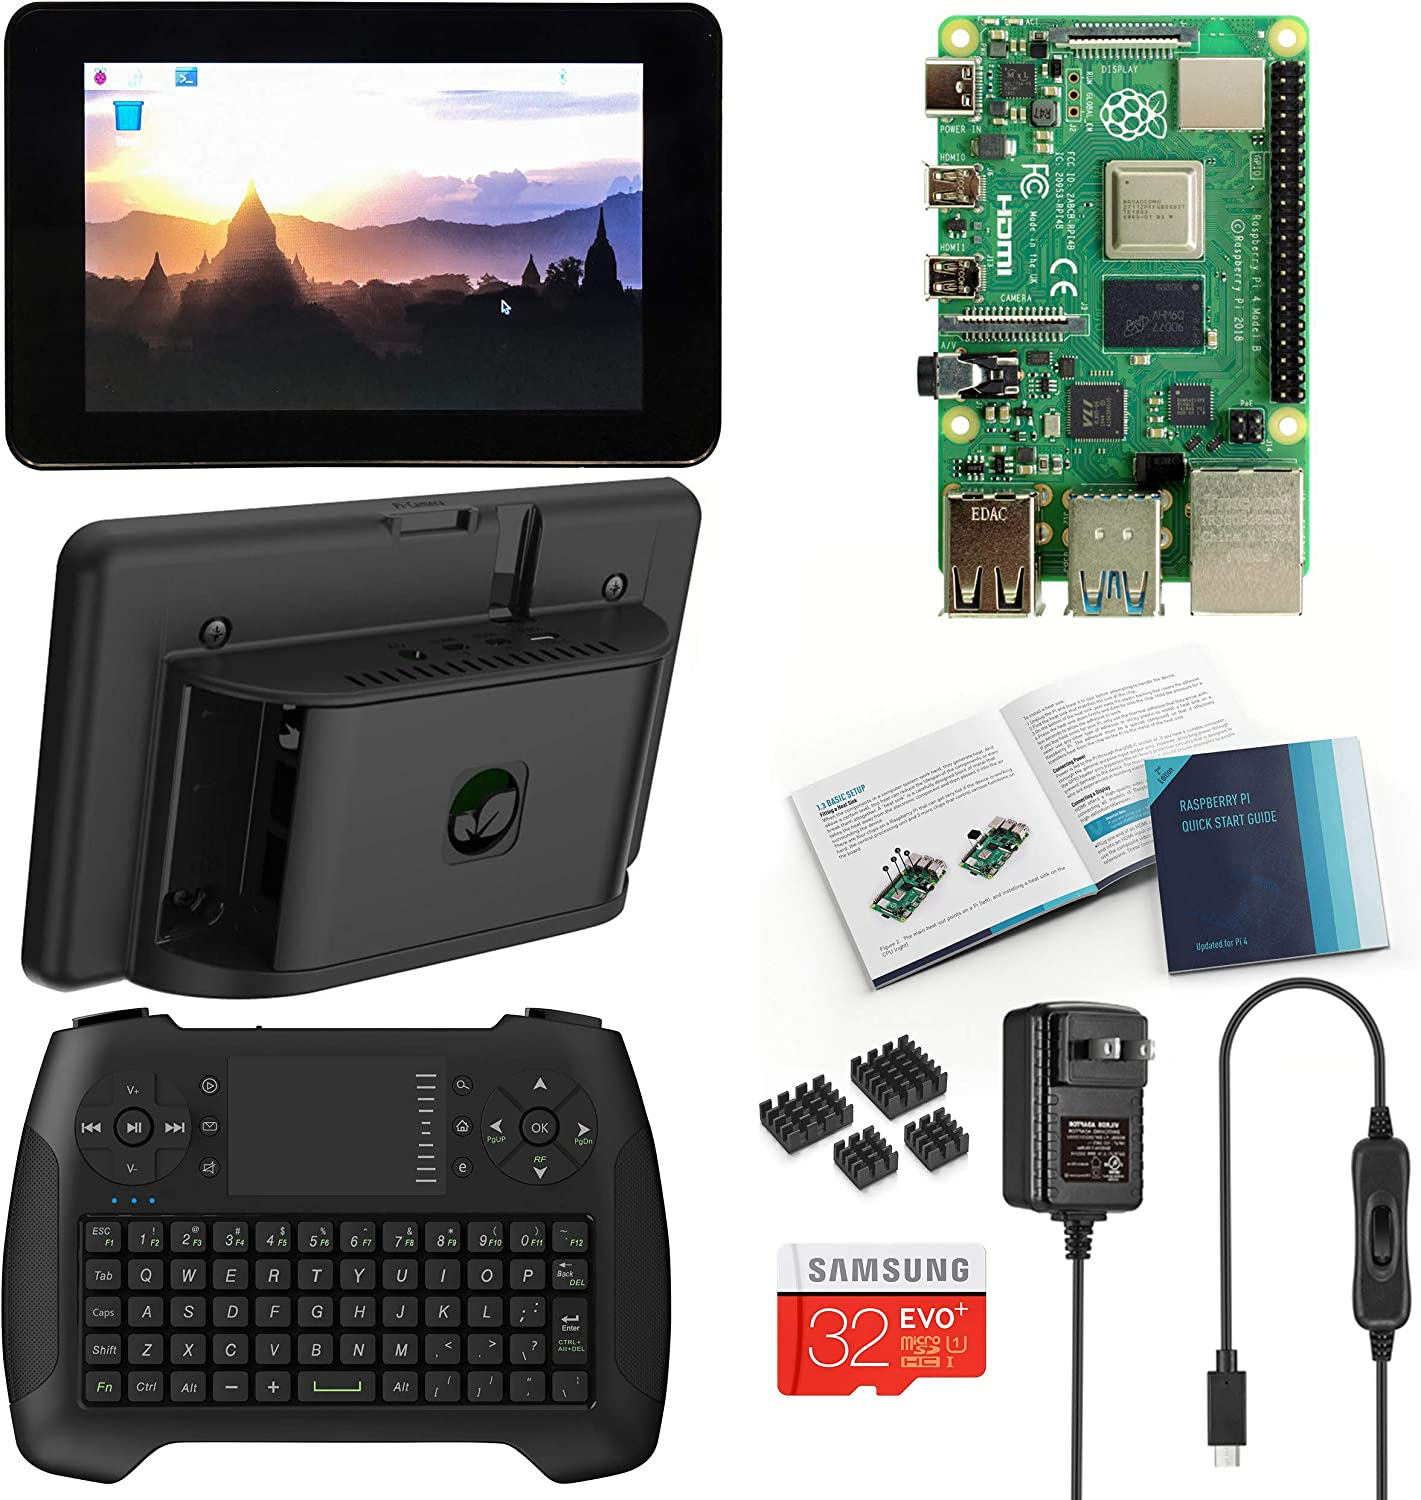 Vilros Raspberry Pi 4 Desktop with Official 7 Inch Touchscreen and Gaming Style Mini Keyboard/Touchpad Combo (2GB RAM)